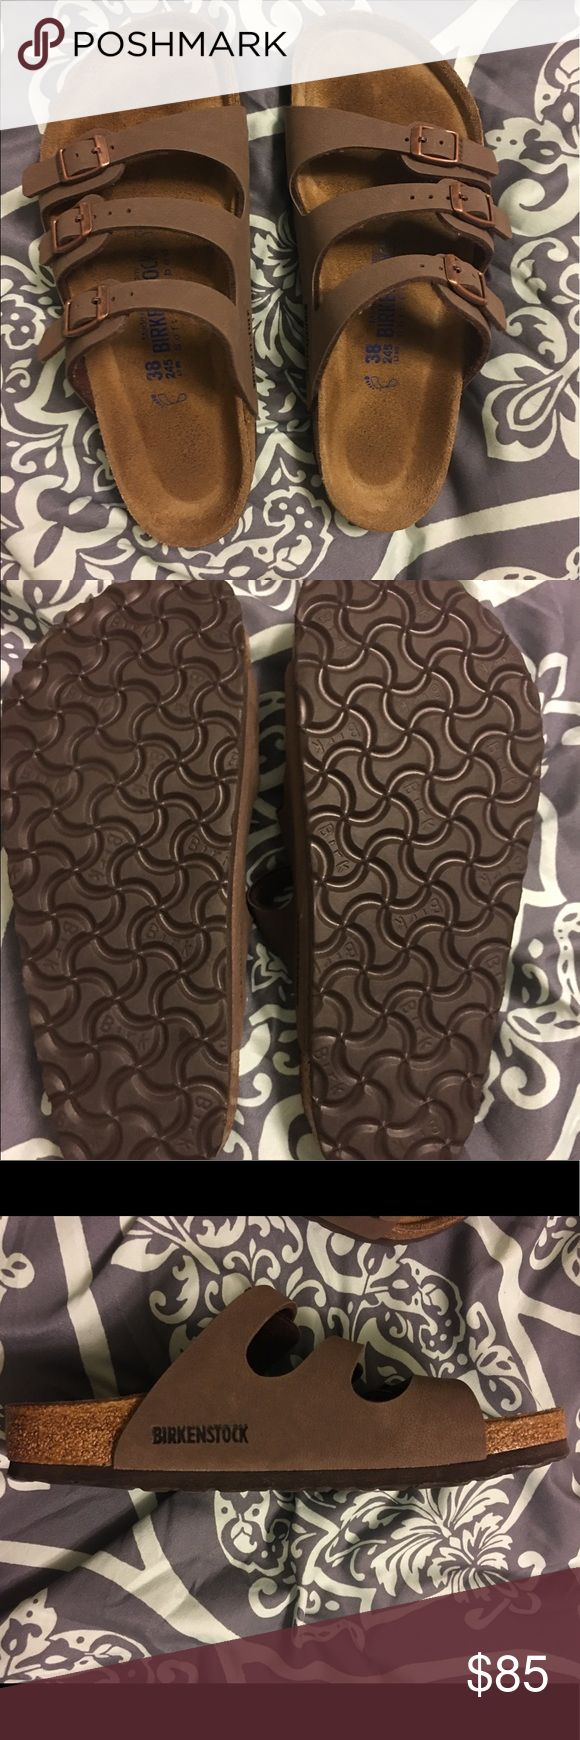 Florida Birkenstock Bought brand new & hardly used as soles of shoes show. I bought them but just never fell in love with them so time to pass them on to a new owner who will. Birkenstocks are so comfortable and offer amazing support, when I was pregnant they are all I could stand to wear. Don't let this amazing pair of like new pass you by Birkenstock Shoes Sandals